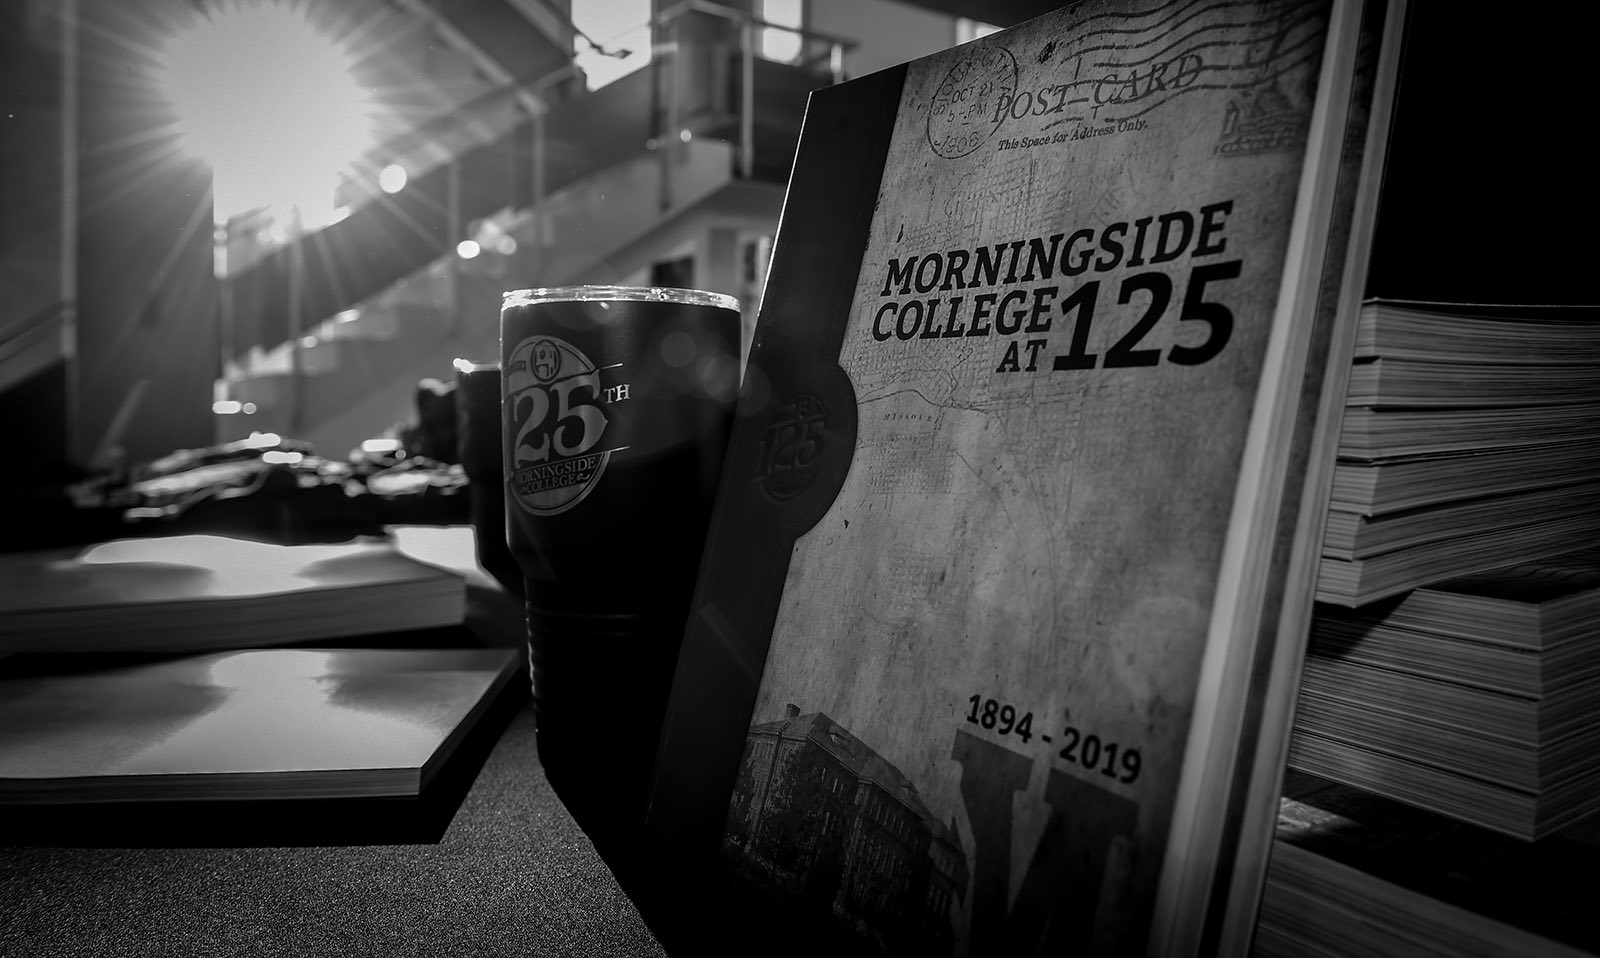 Morningside at 125 book